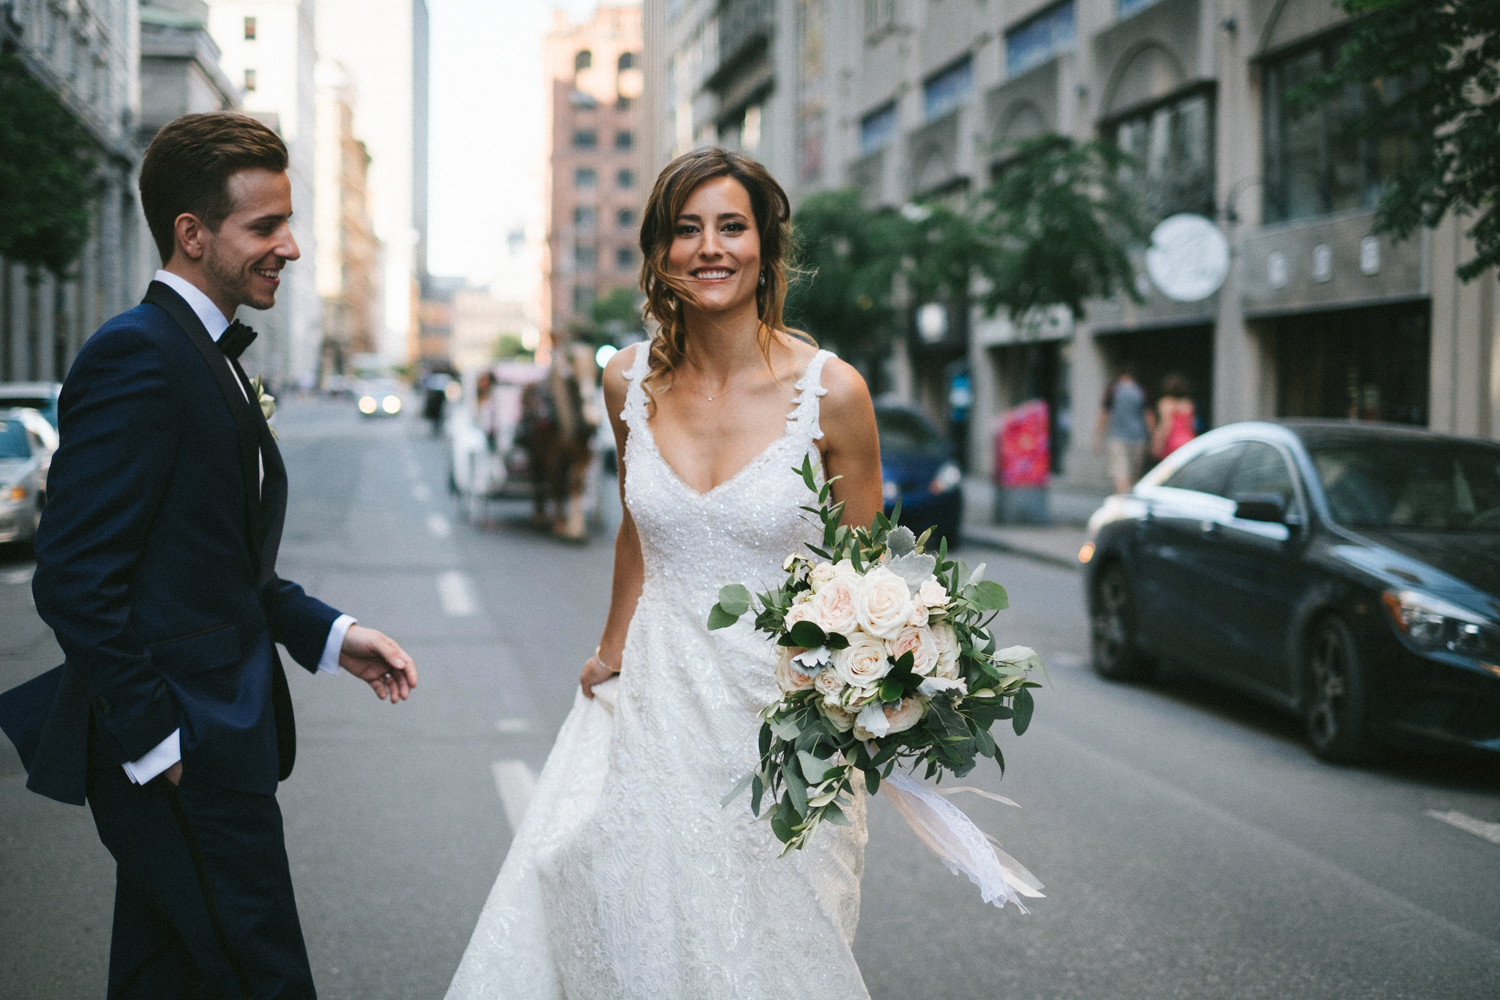 245Montreal Wedding Photographer.jpg